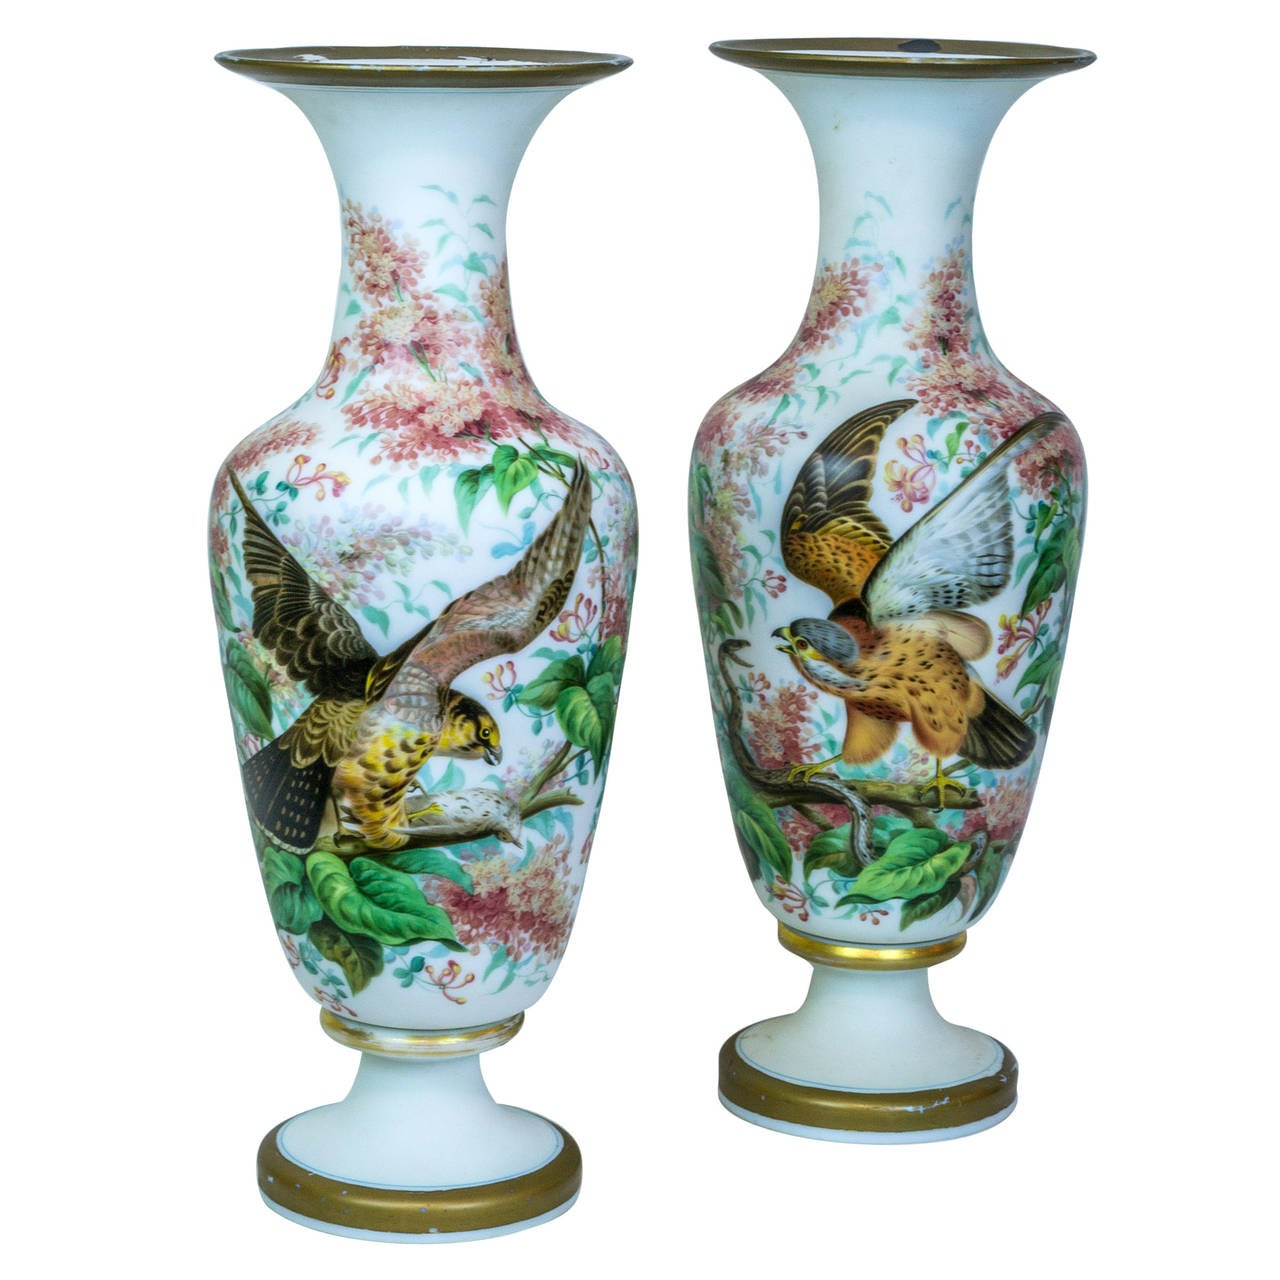 Large pair of tall opaline vases with painted bird and floral large pair of tall opaline vases with painted bird and floral decorations for sale reviewsmspy